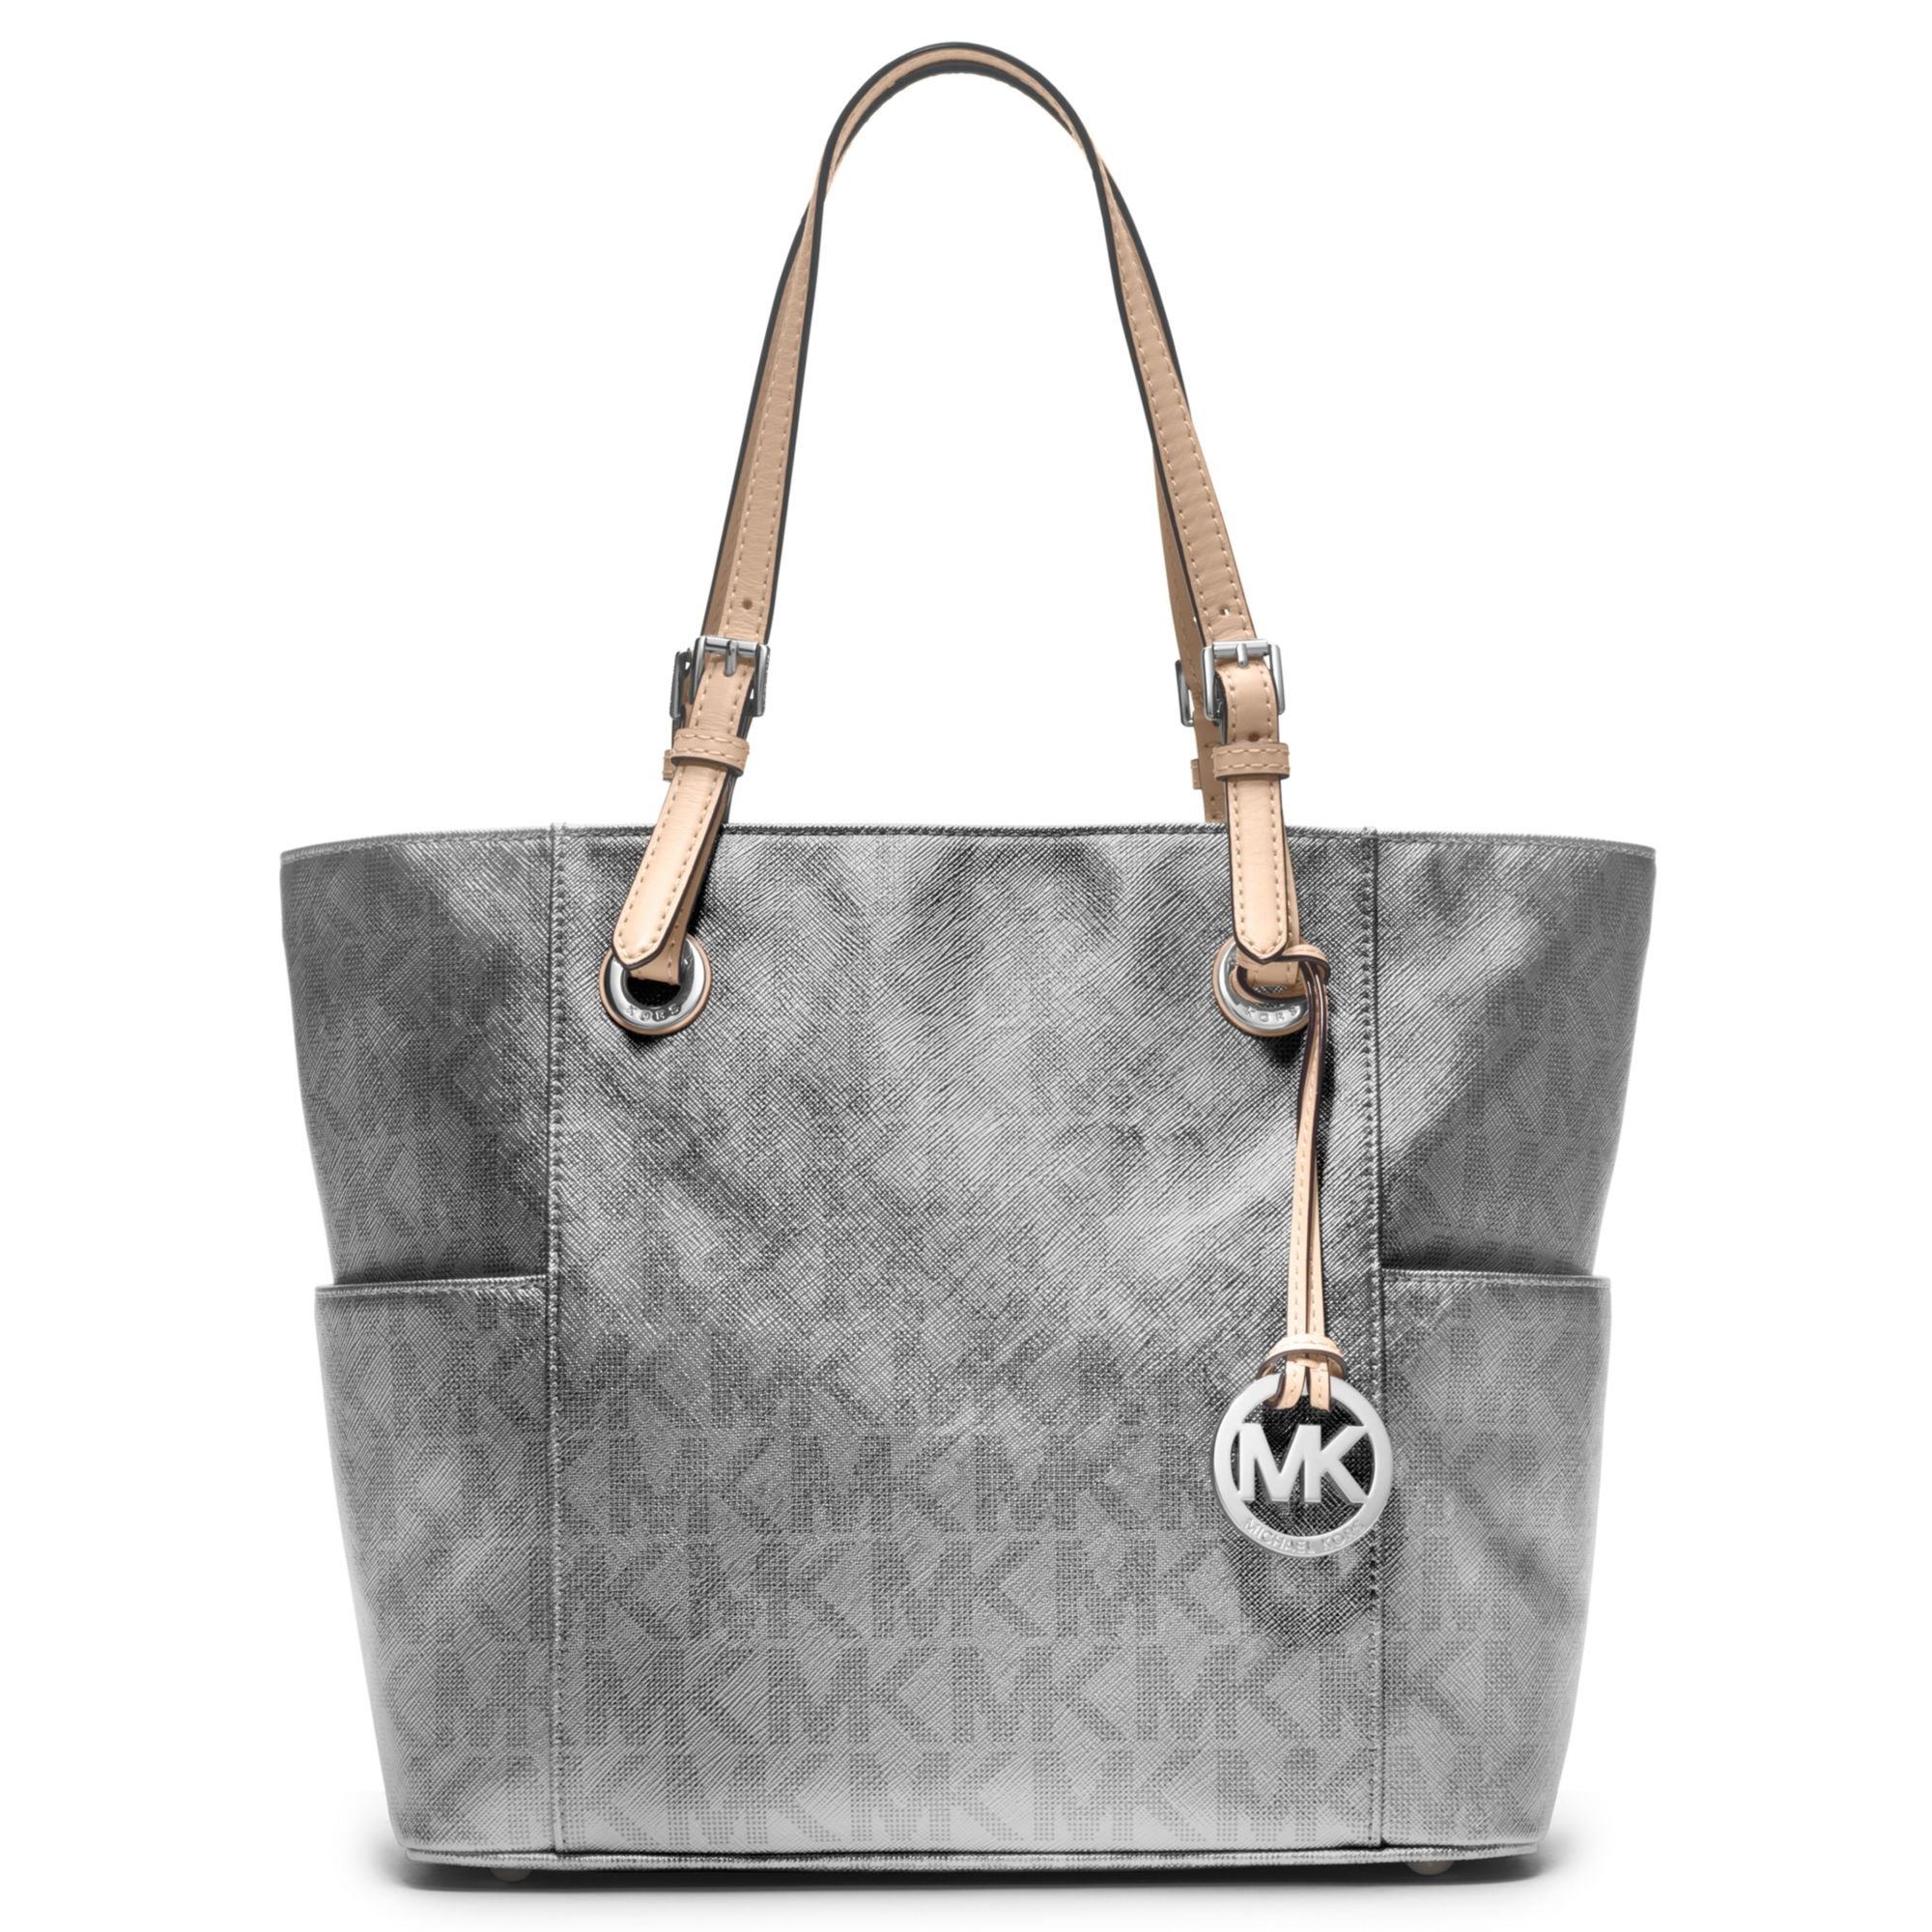 60eb7849fb818 Lyst - Michael Kors Signature Metallic East West Tote in Gray